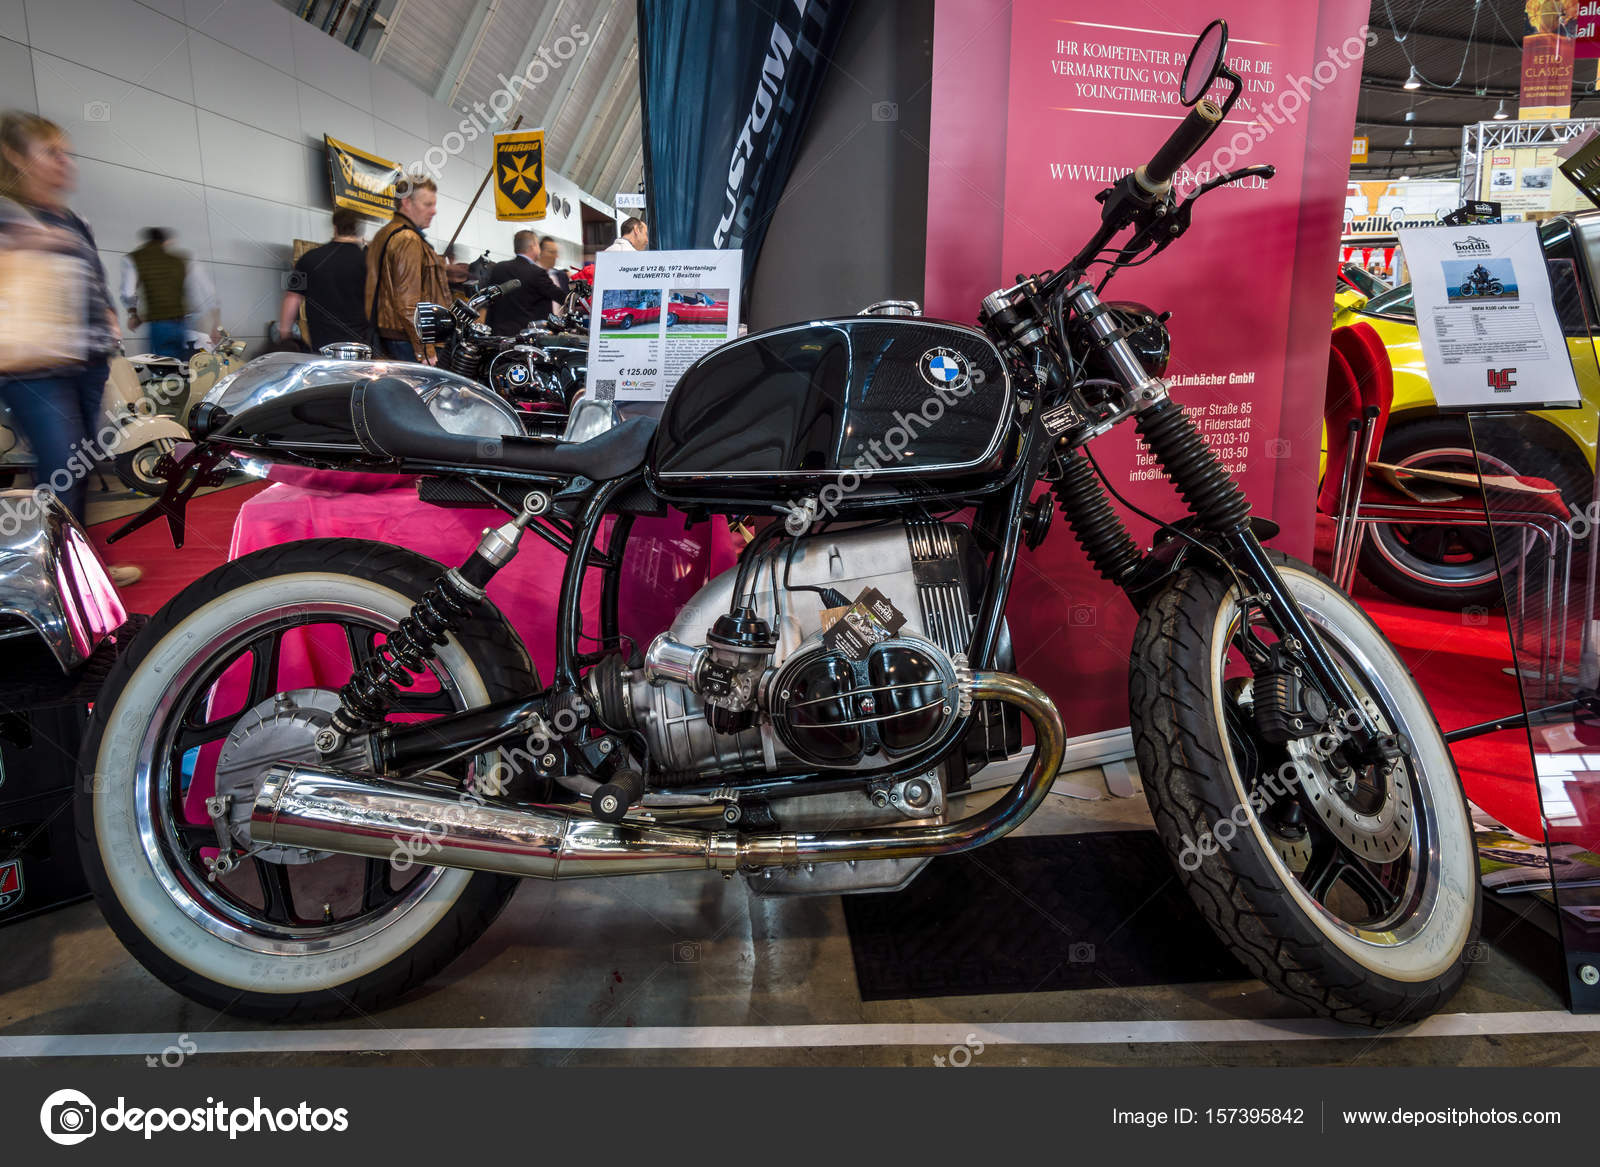 Images Bmw Cafe Racer The Motorcycle Bmw R100 Cafe Racer 1991 Stock Editorial Photo C S Kohl 157395842